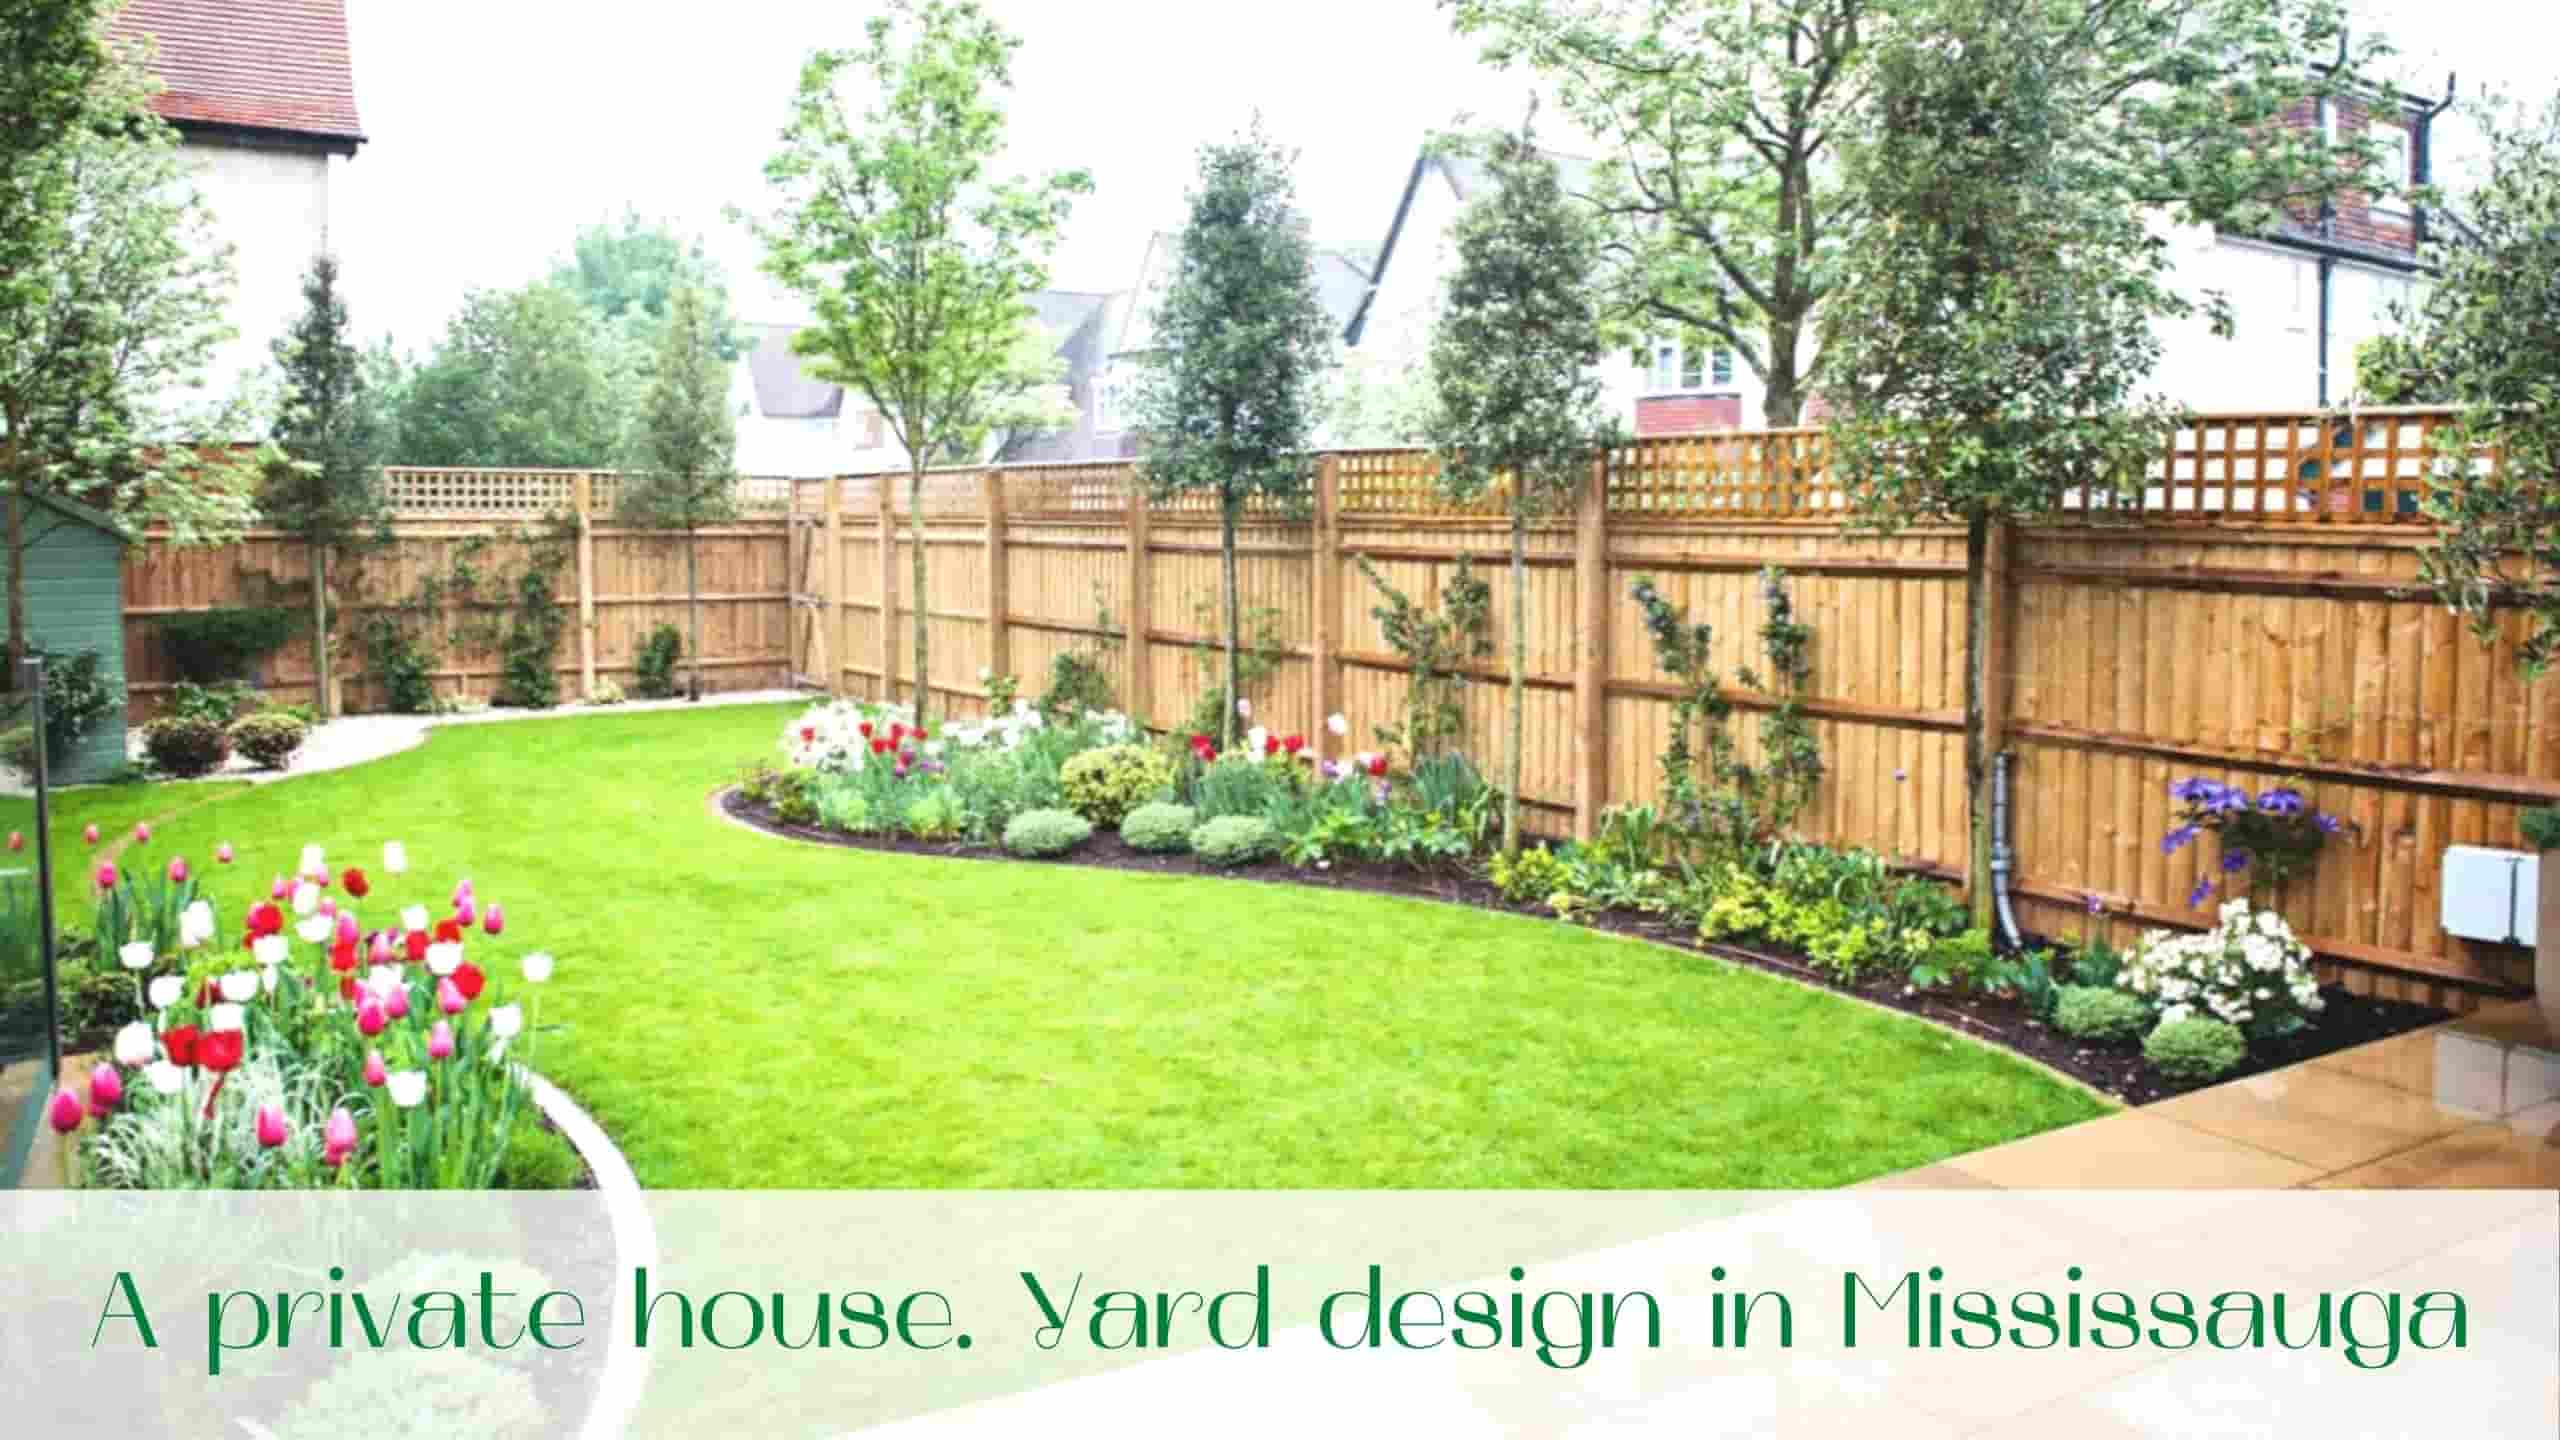 image-Yard-design-in-Mississauga